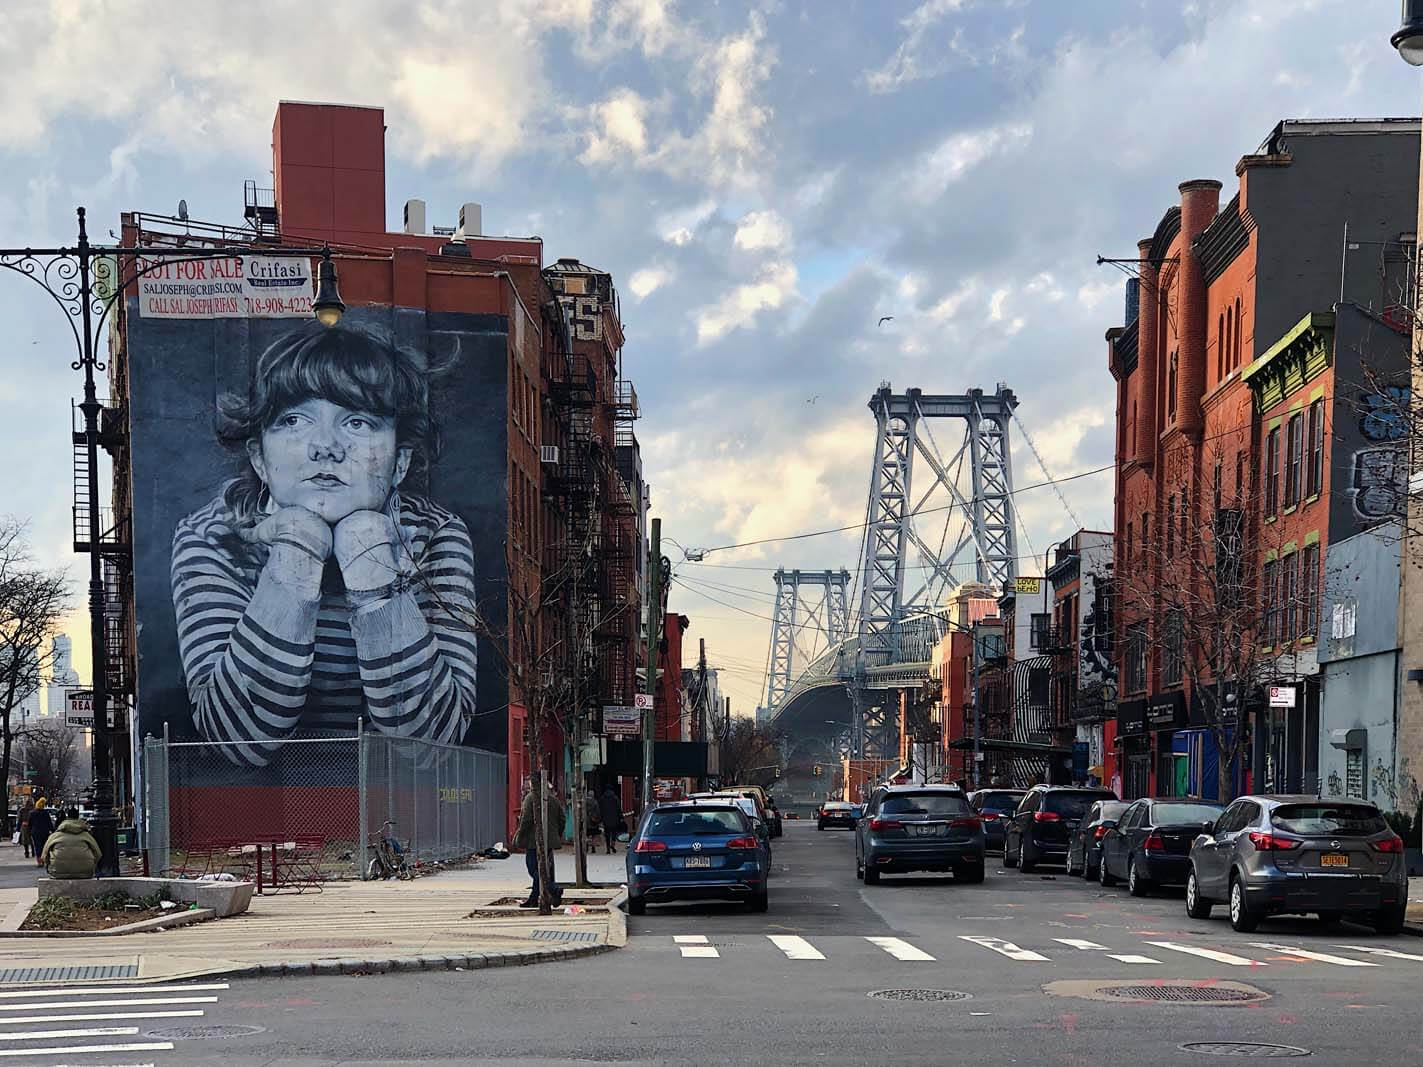 Mona Lisa of Williamsburg by Steven Paul Brooklyn mural and bridge